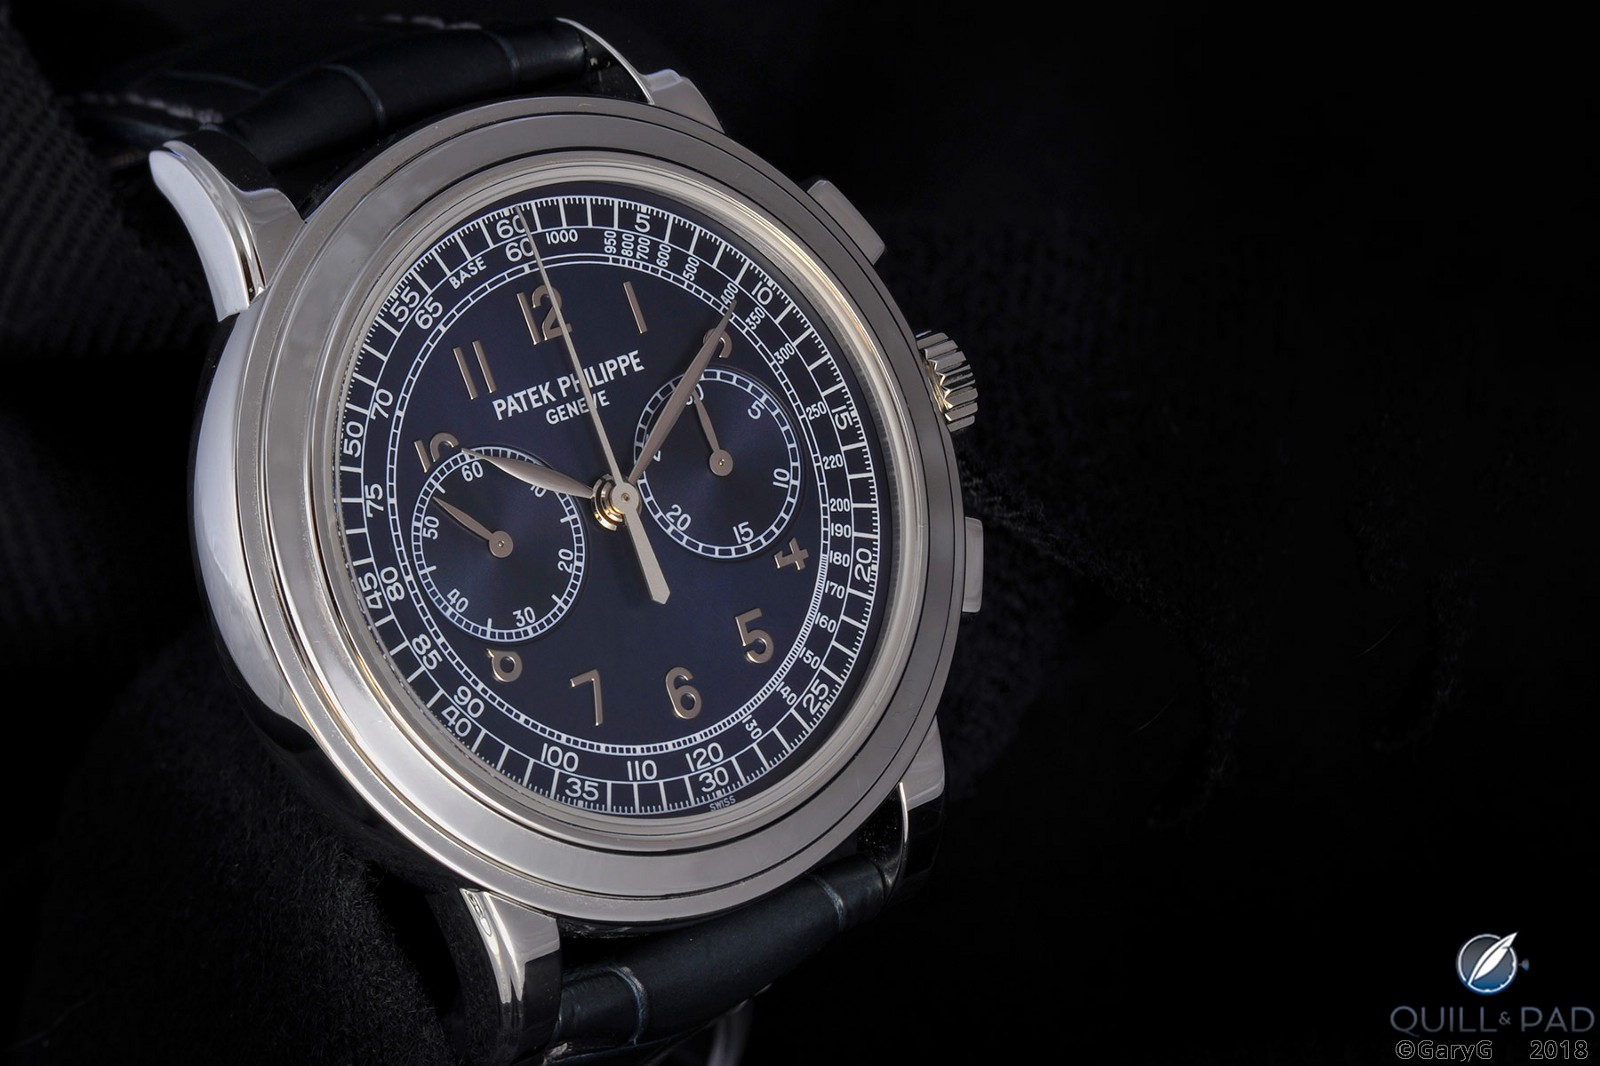 Captivating form and color: Patek Philippe Reference 5070P chronograph